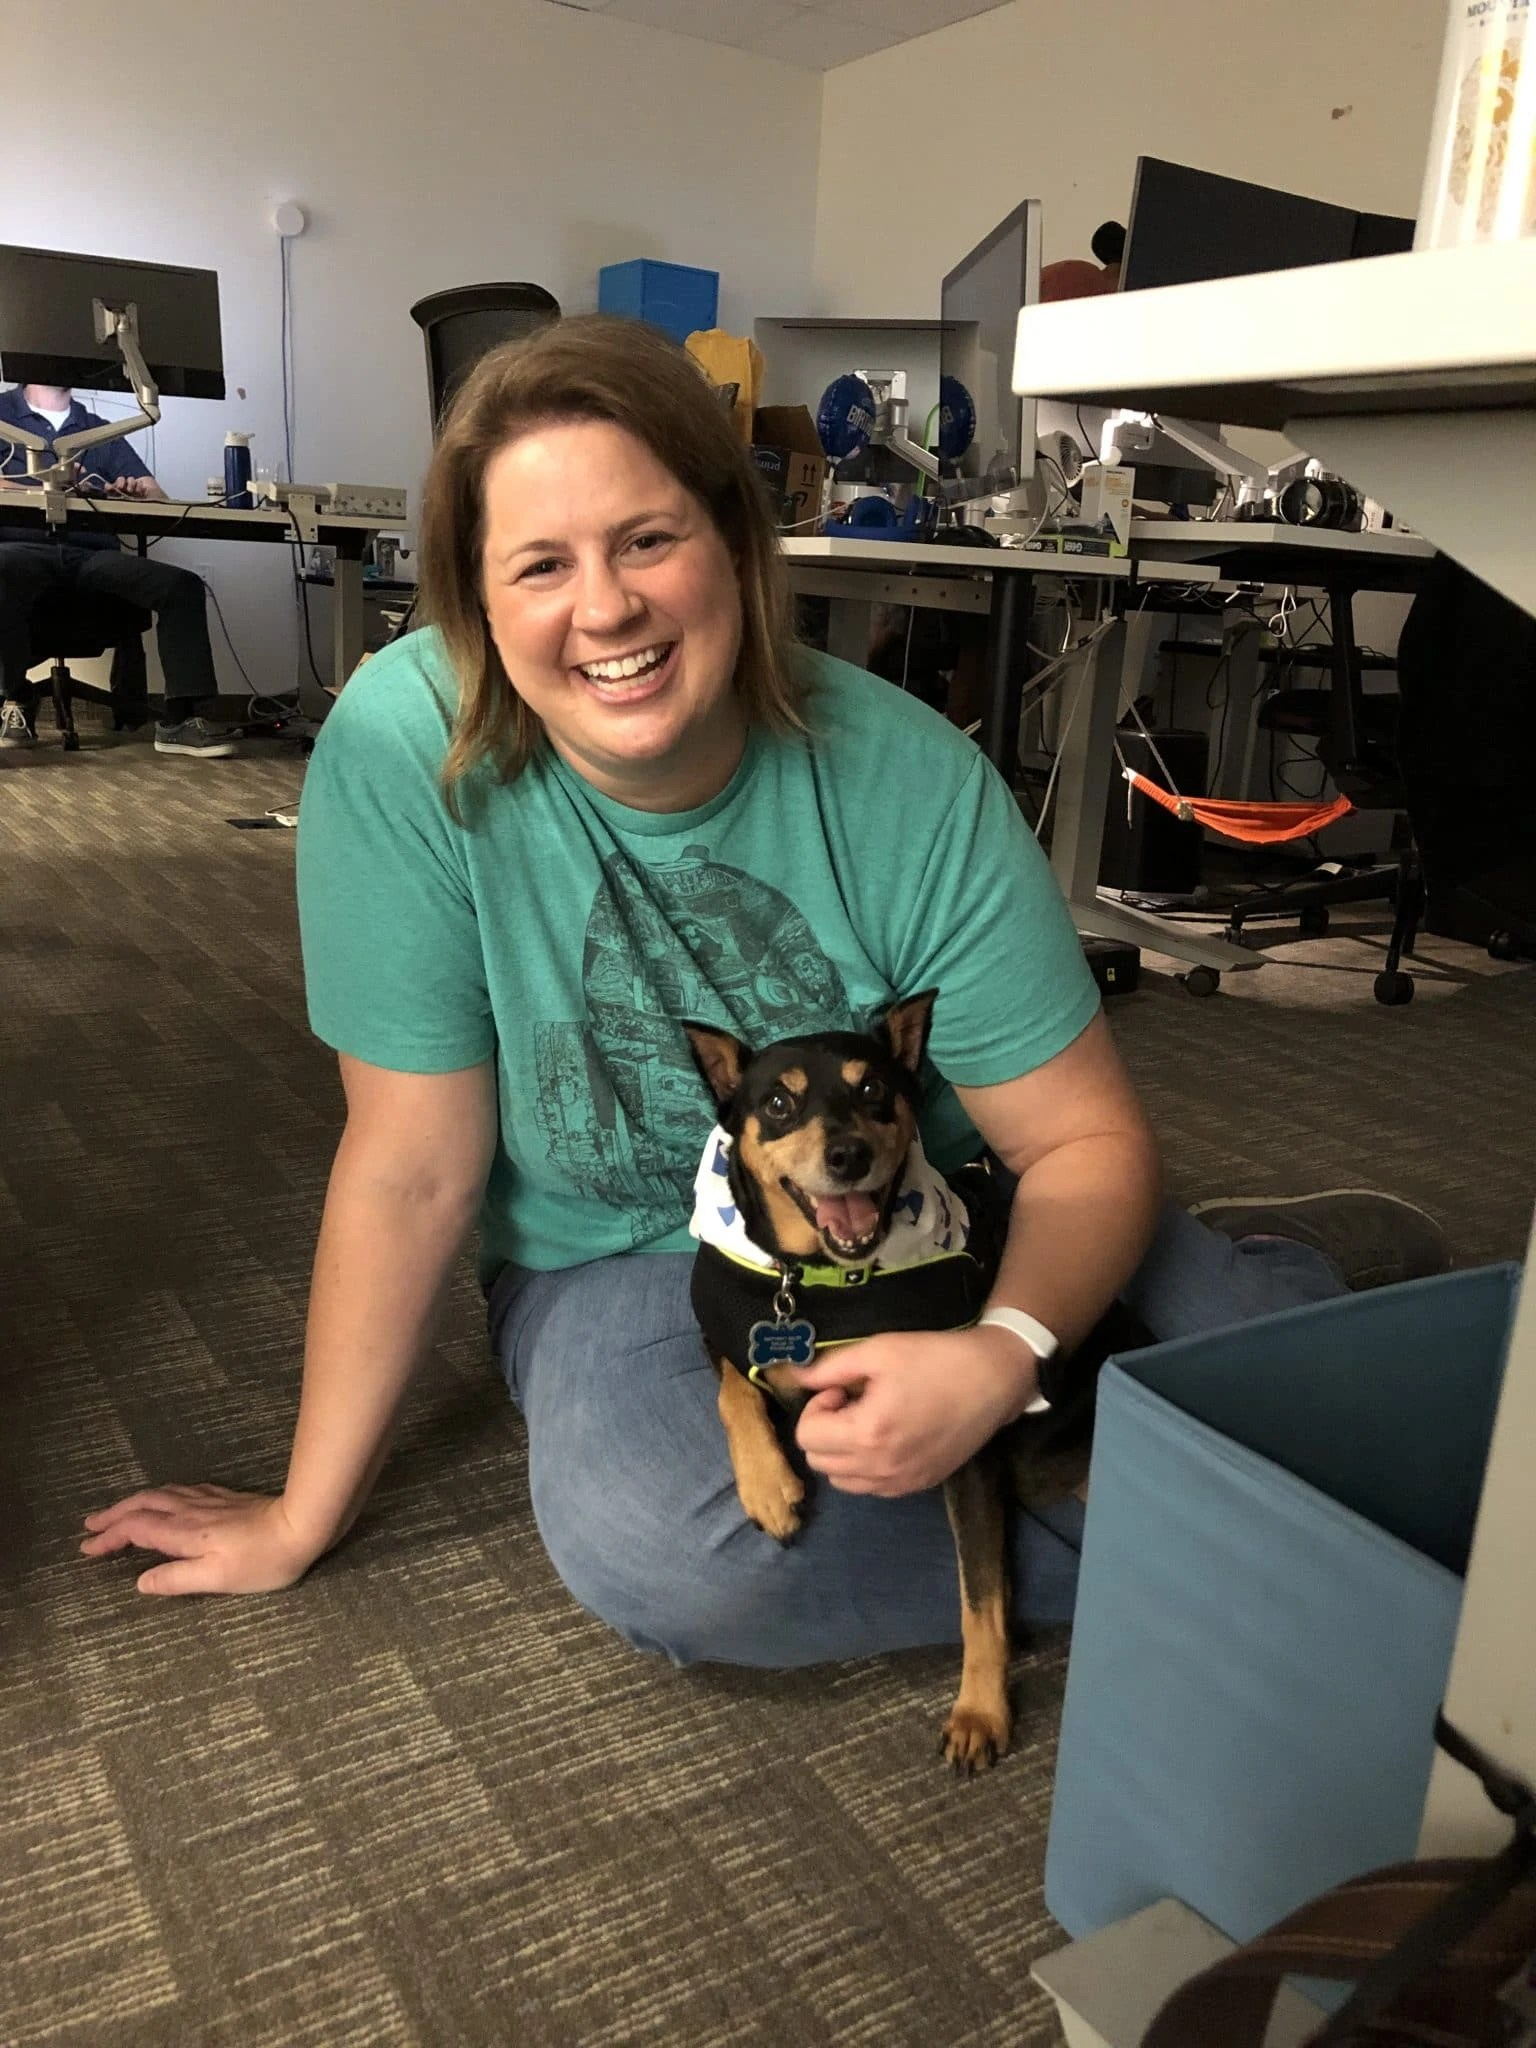 Gambit with Barbara at bring your dog to work day at DoctorLogic